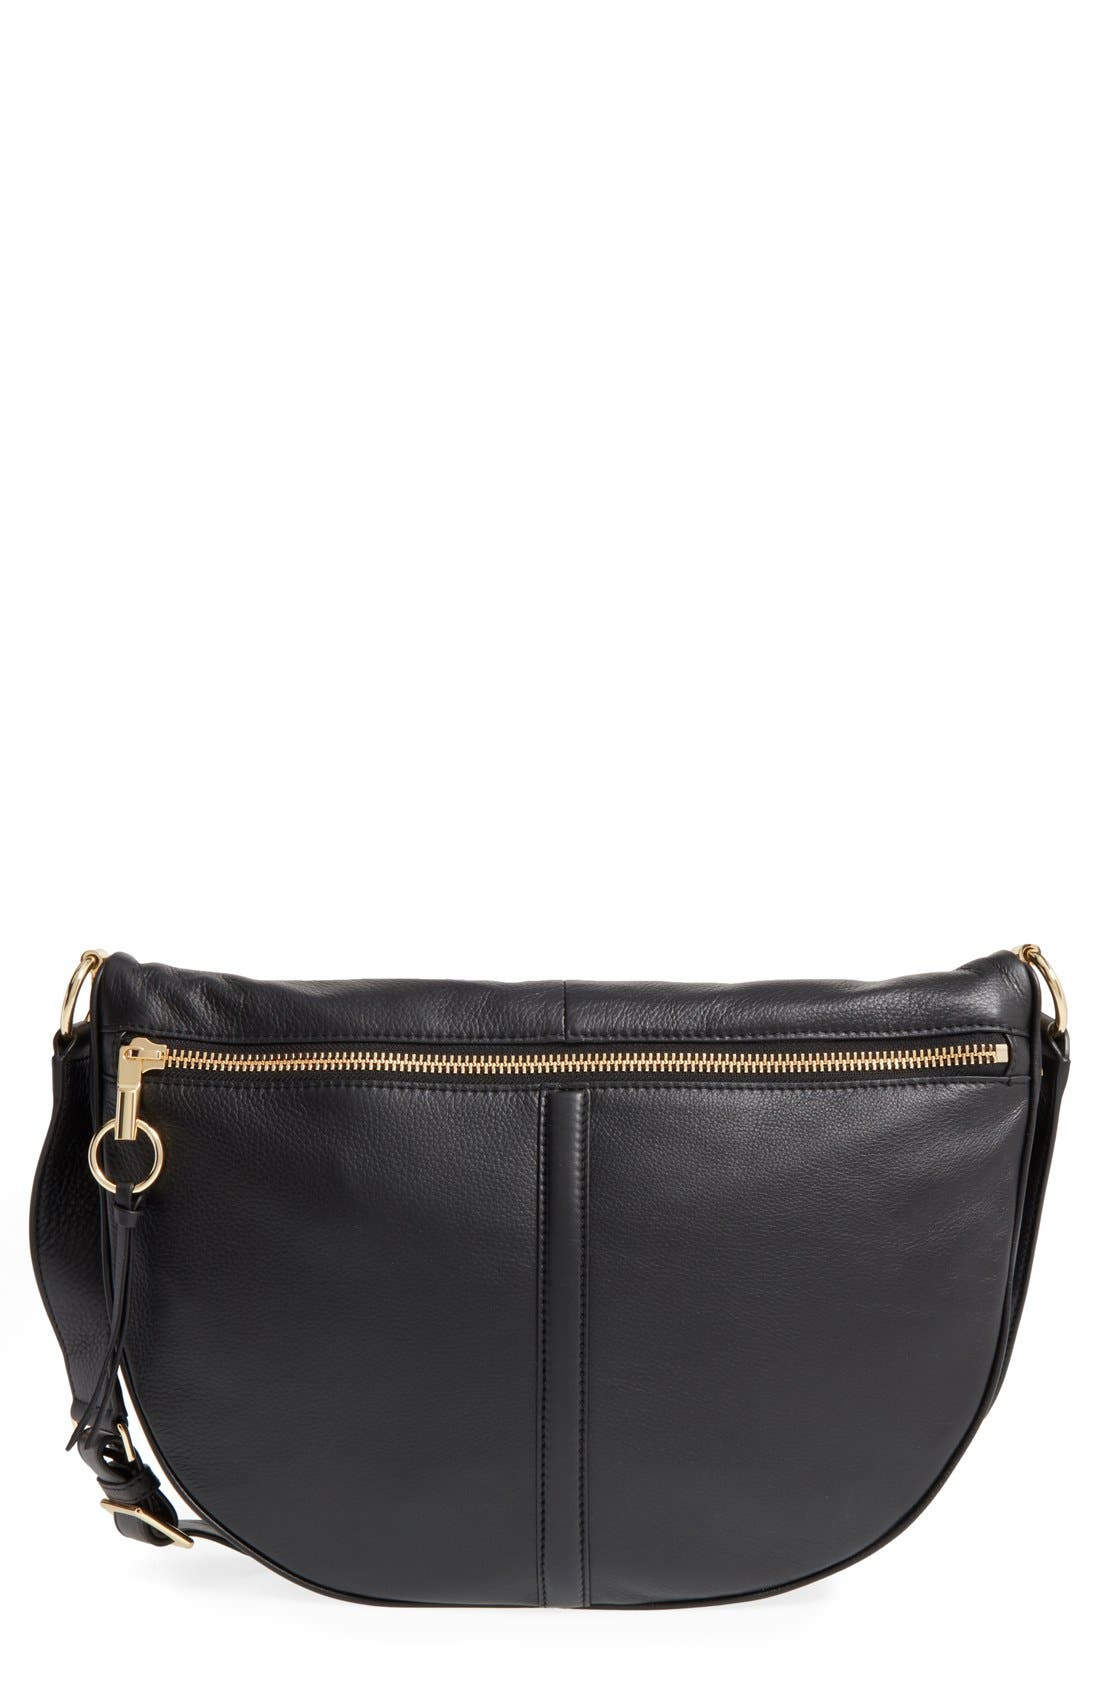 ELIZABETH AND JAMES, 'Scott Moon' Leather Crossbody Bag, Main thumbnail 1, color, 001